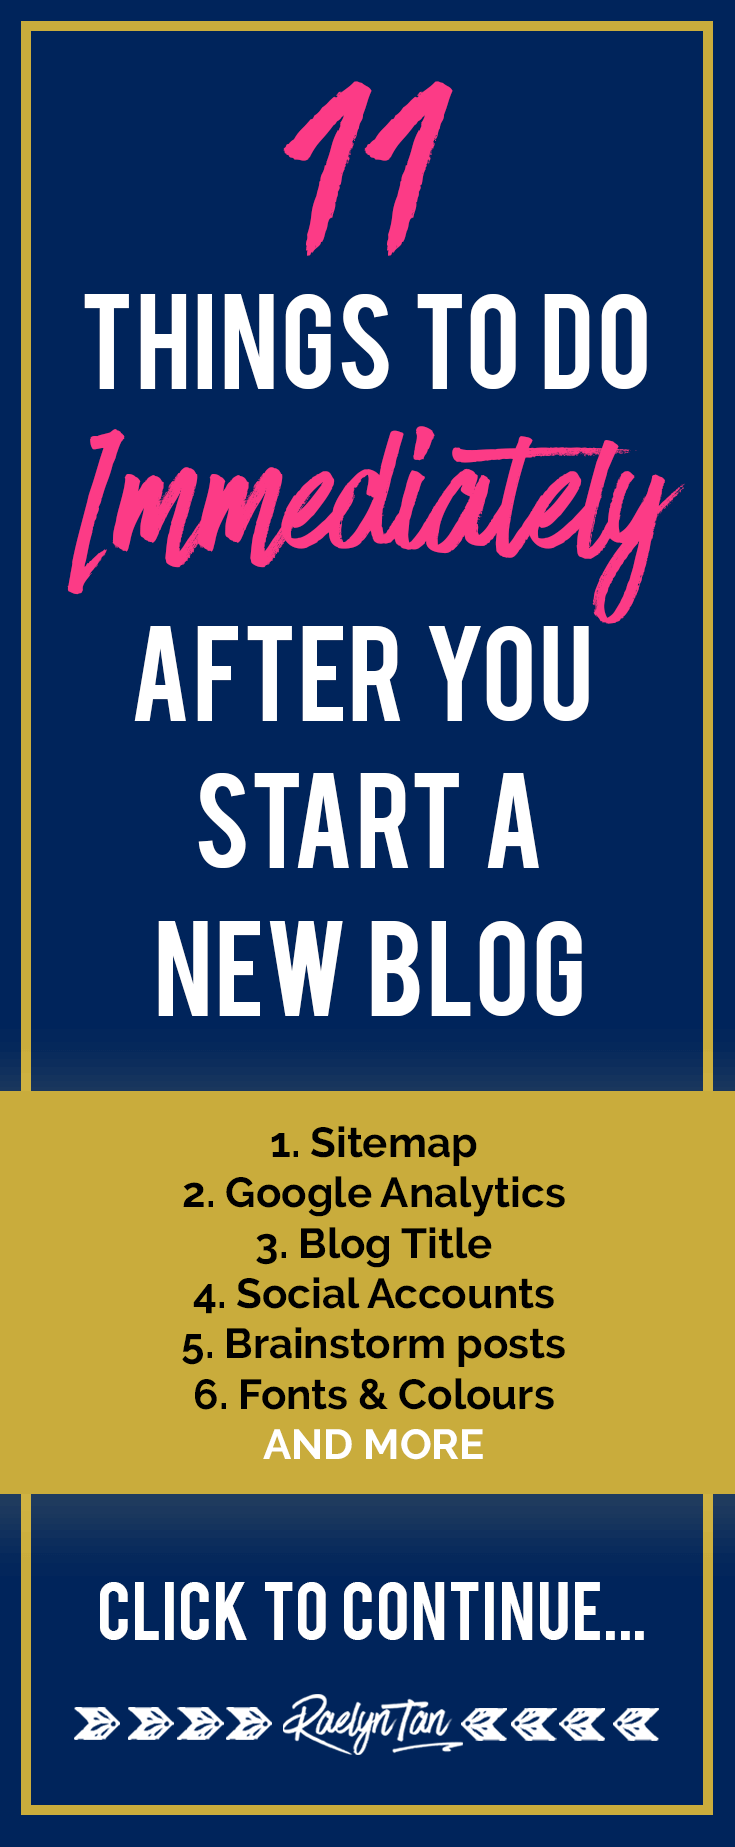 Starting a new blog? Here are 11 practical things to do immediately that'll set your blog business up for success.